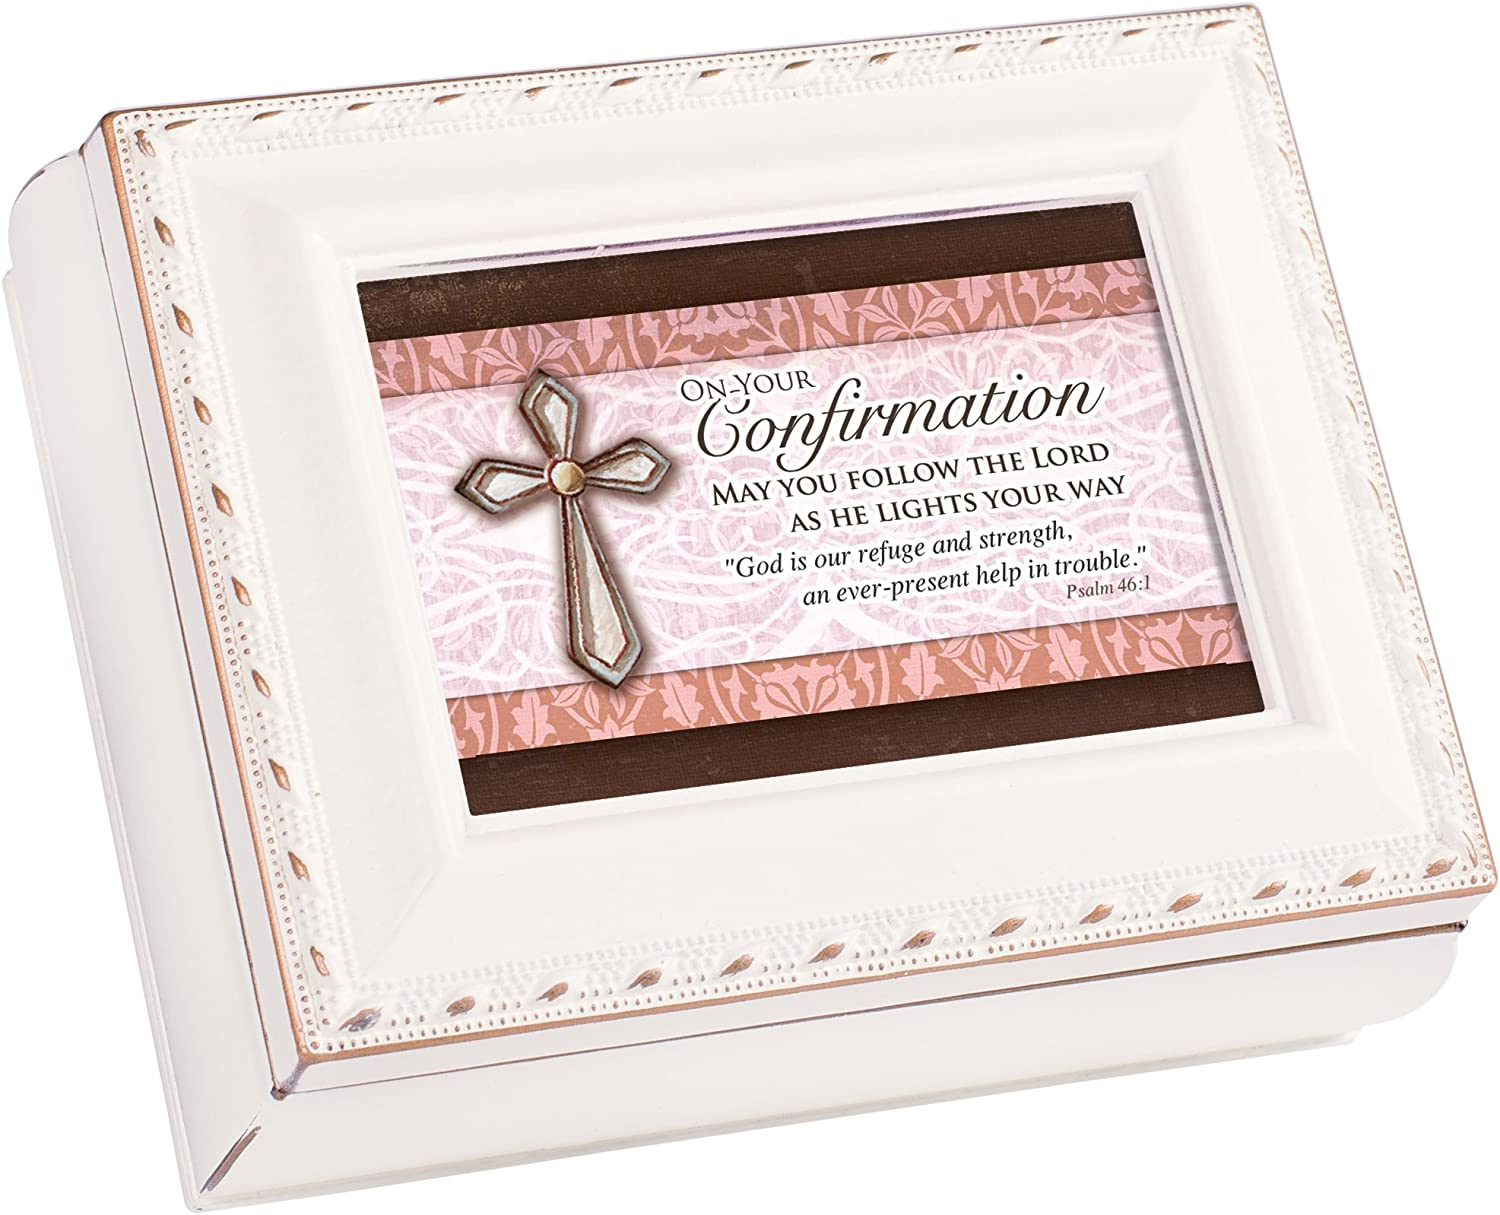 Cottage Garden Confirmation Follow Ivory Rope Trim 4.5 x 3.5 Tiny Square Jewelry Keepsake Box